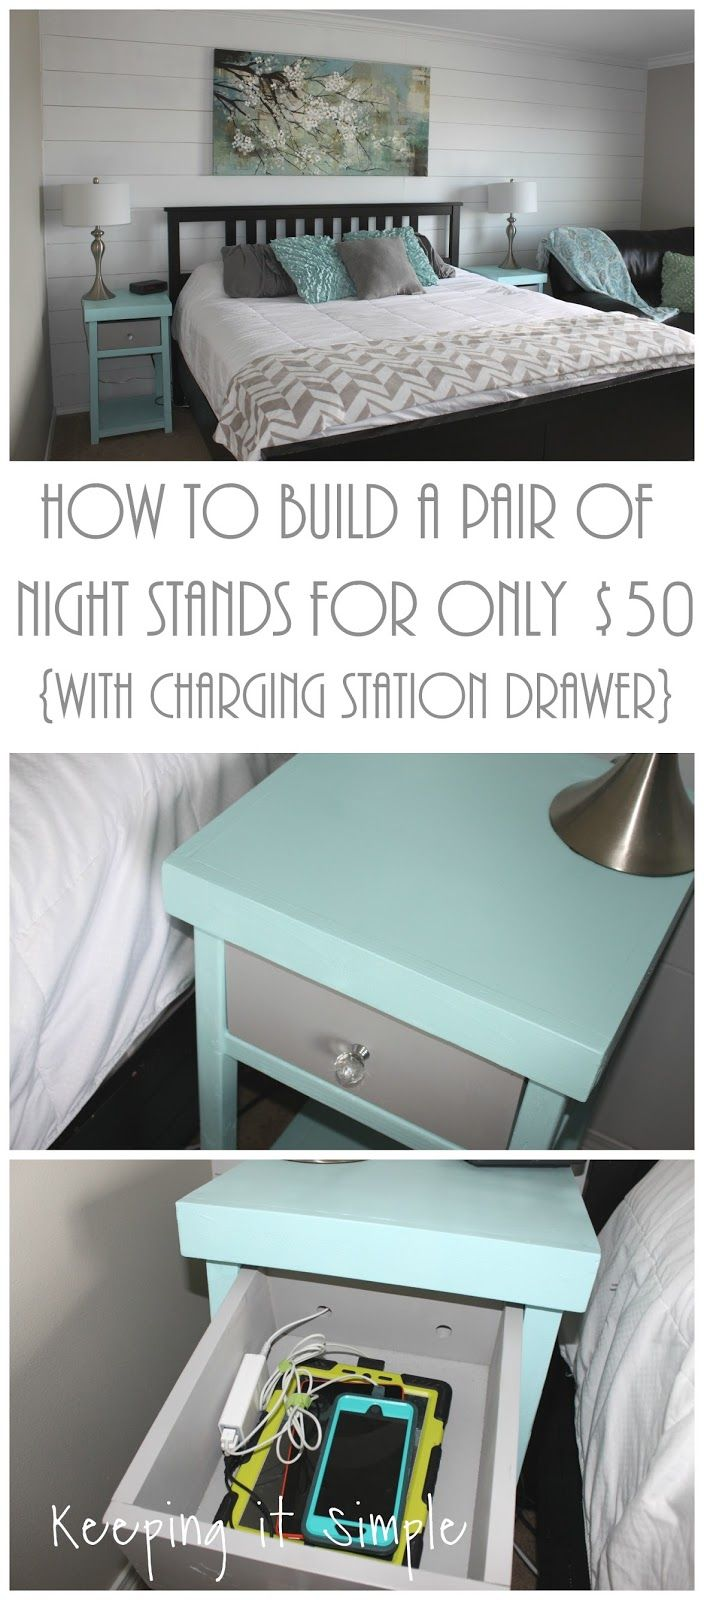 How to build a pair of DIY night stands for only $50 with a charging station drawer.